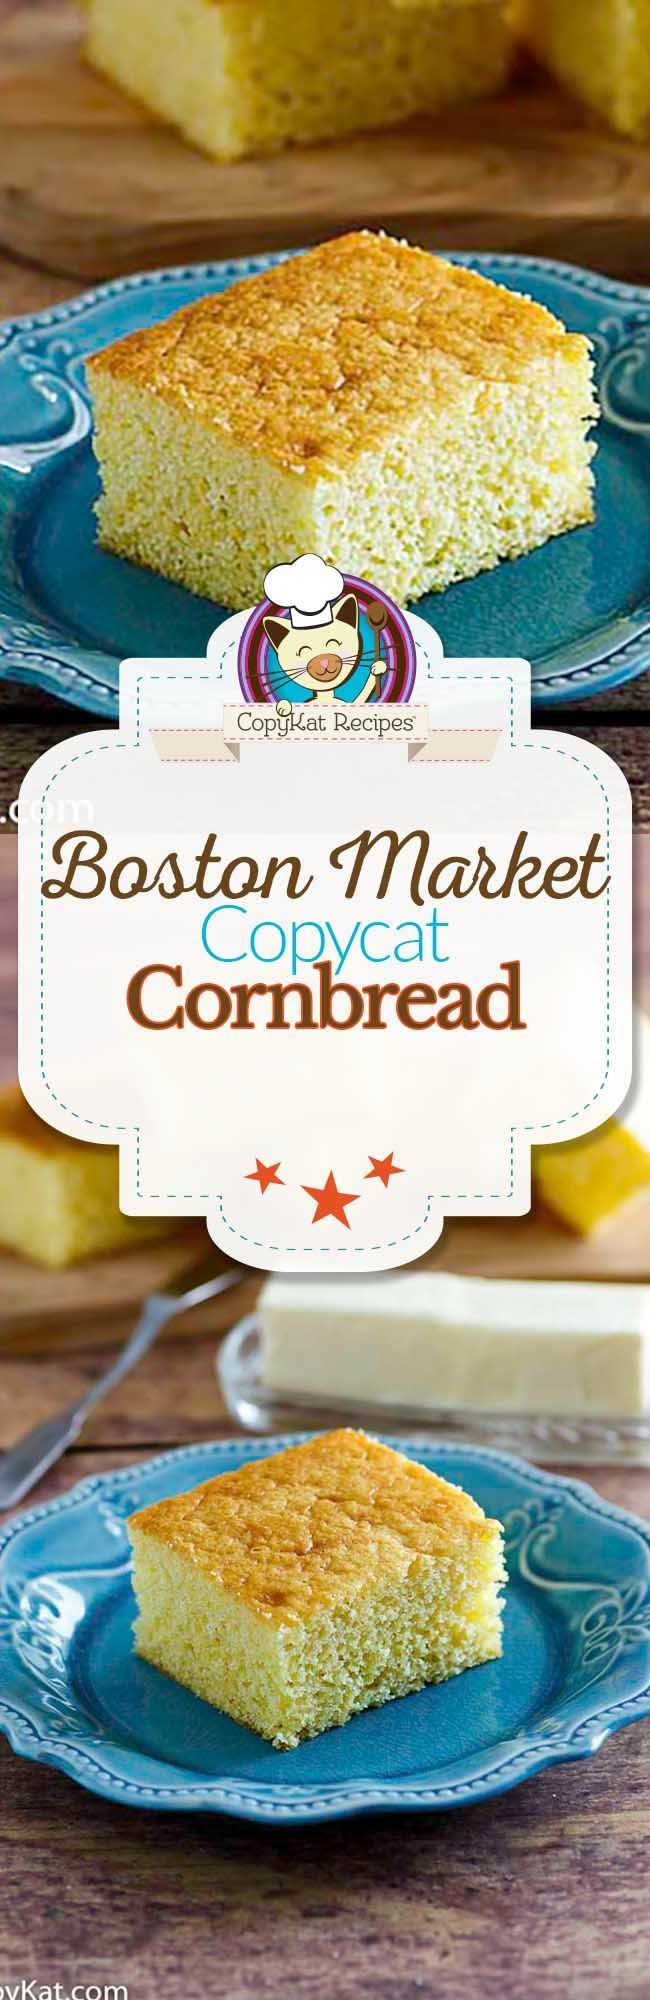 You can recreate the Boston Market Cornbread at home with this copycat recipe.